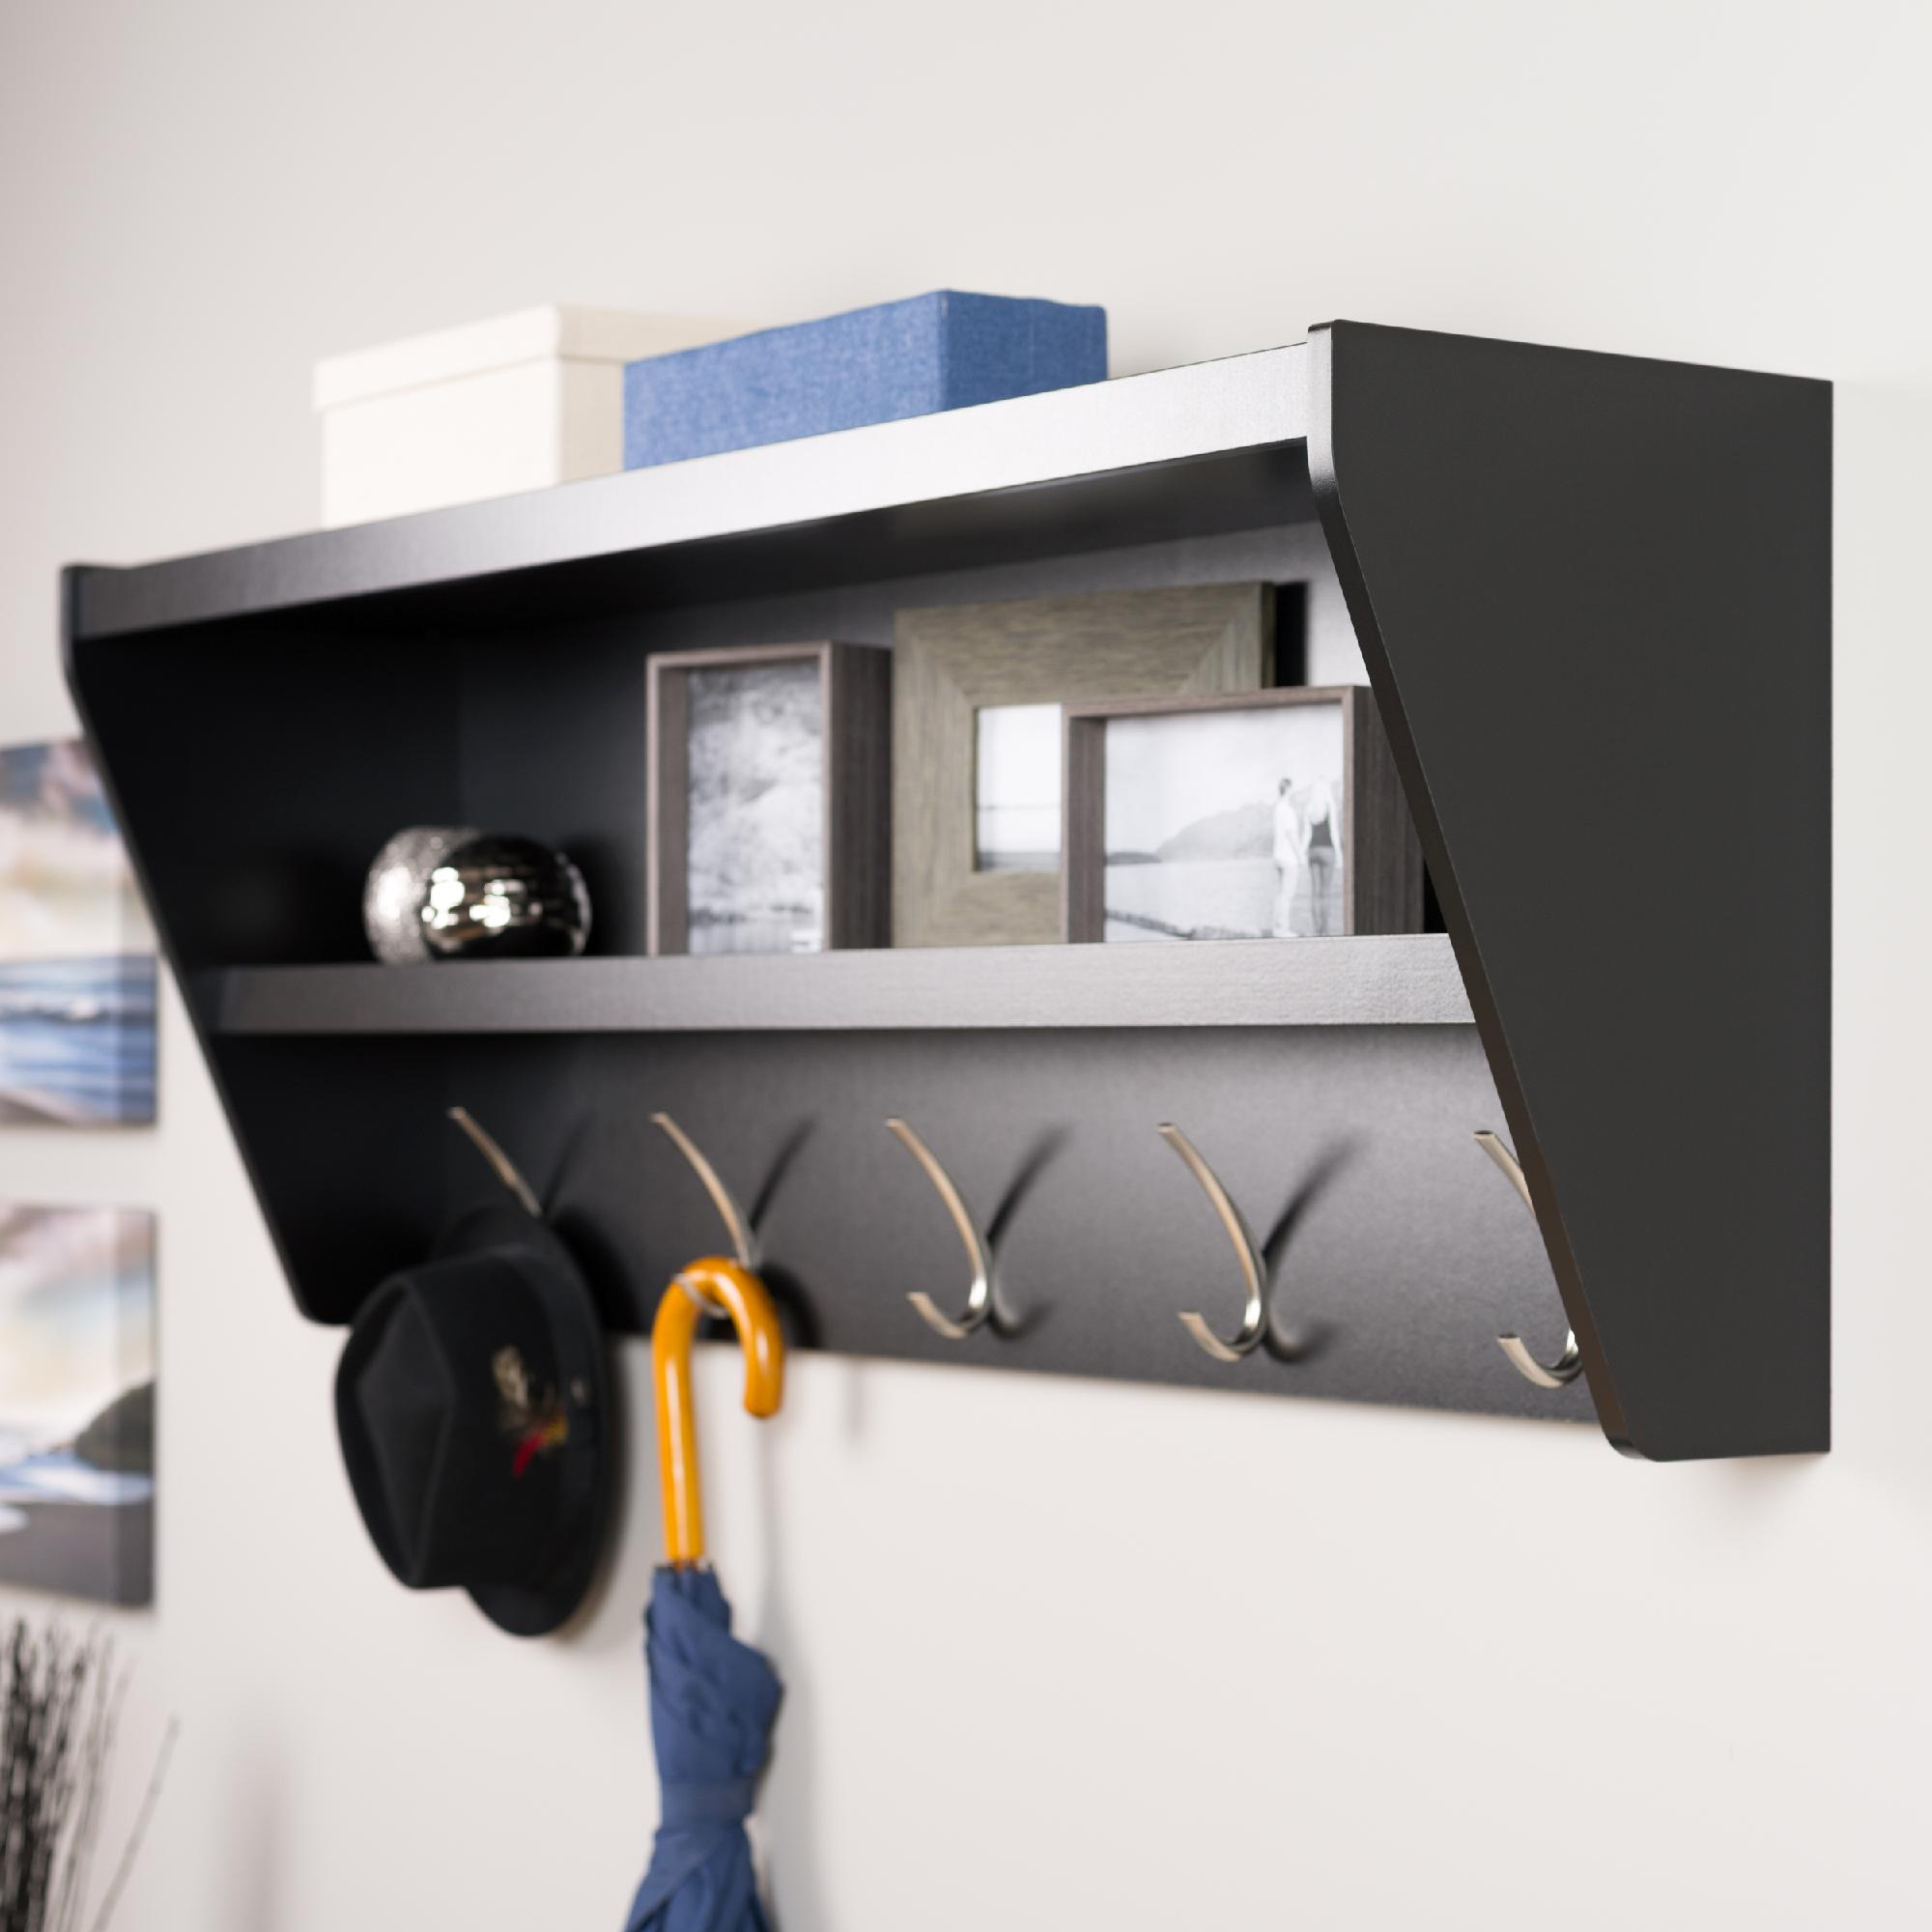 prepac floating entryway shelf coat rack black spin prod with bench white rustic media console decorative brackets metal computer desks for home storage enclosed wall shelves